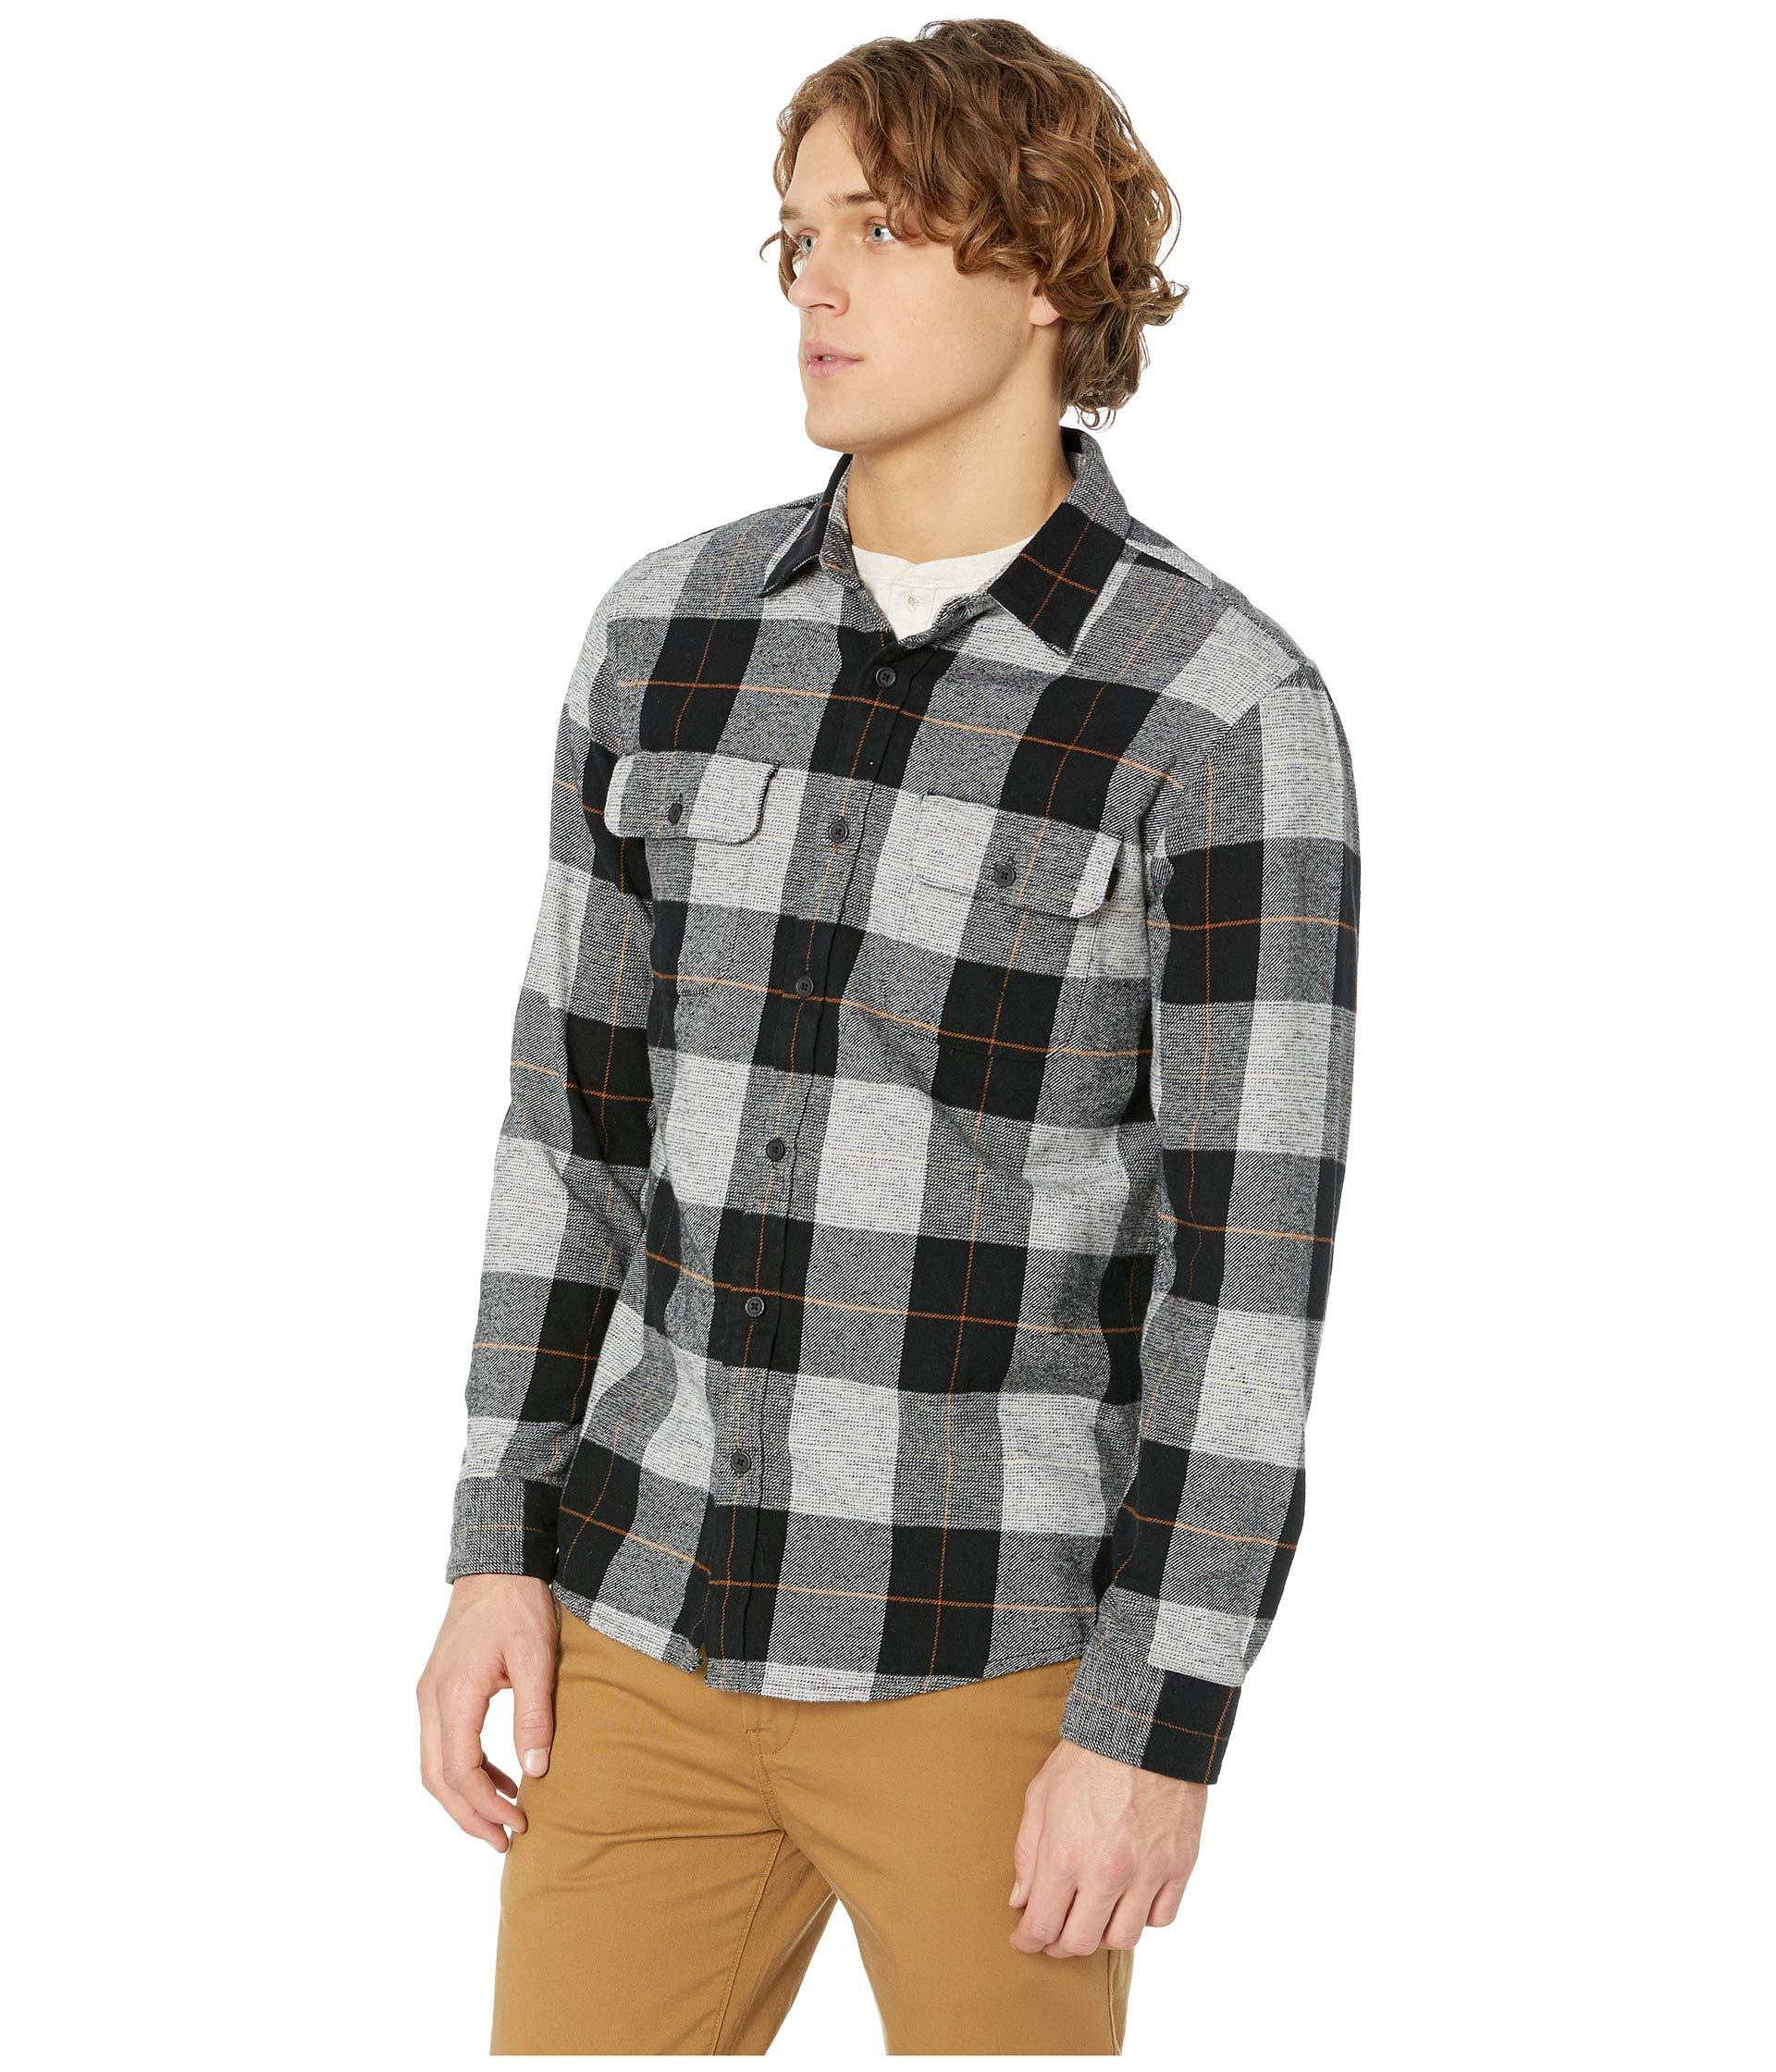 Lyst Rip Curl Shoreline Flannel Shirt Black Men S Clothing In